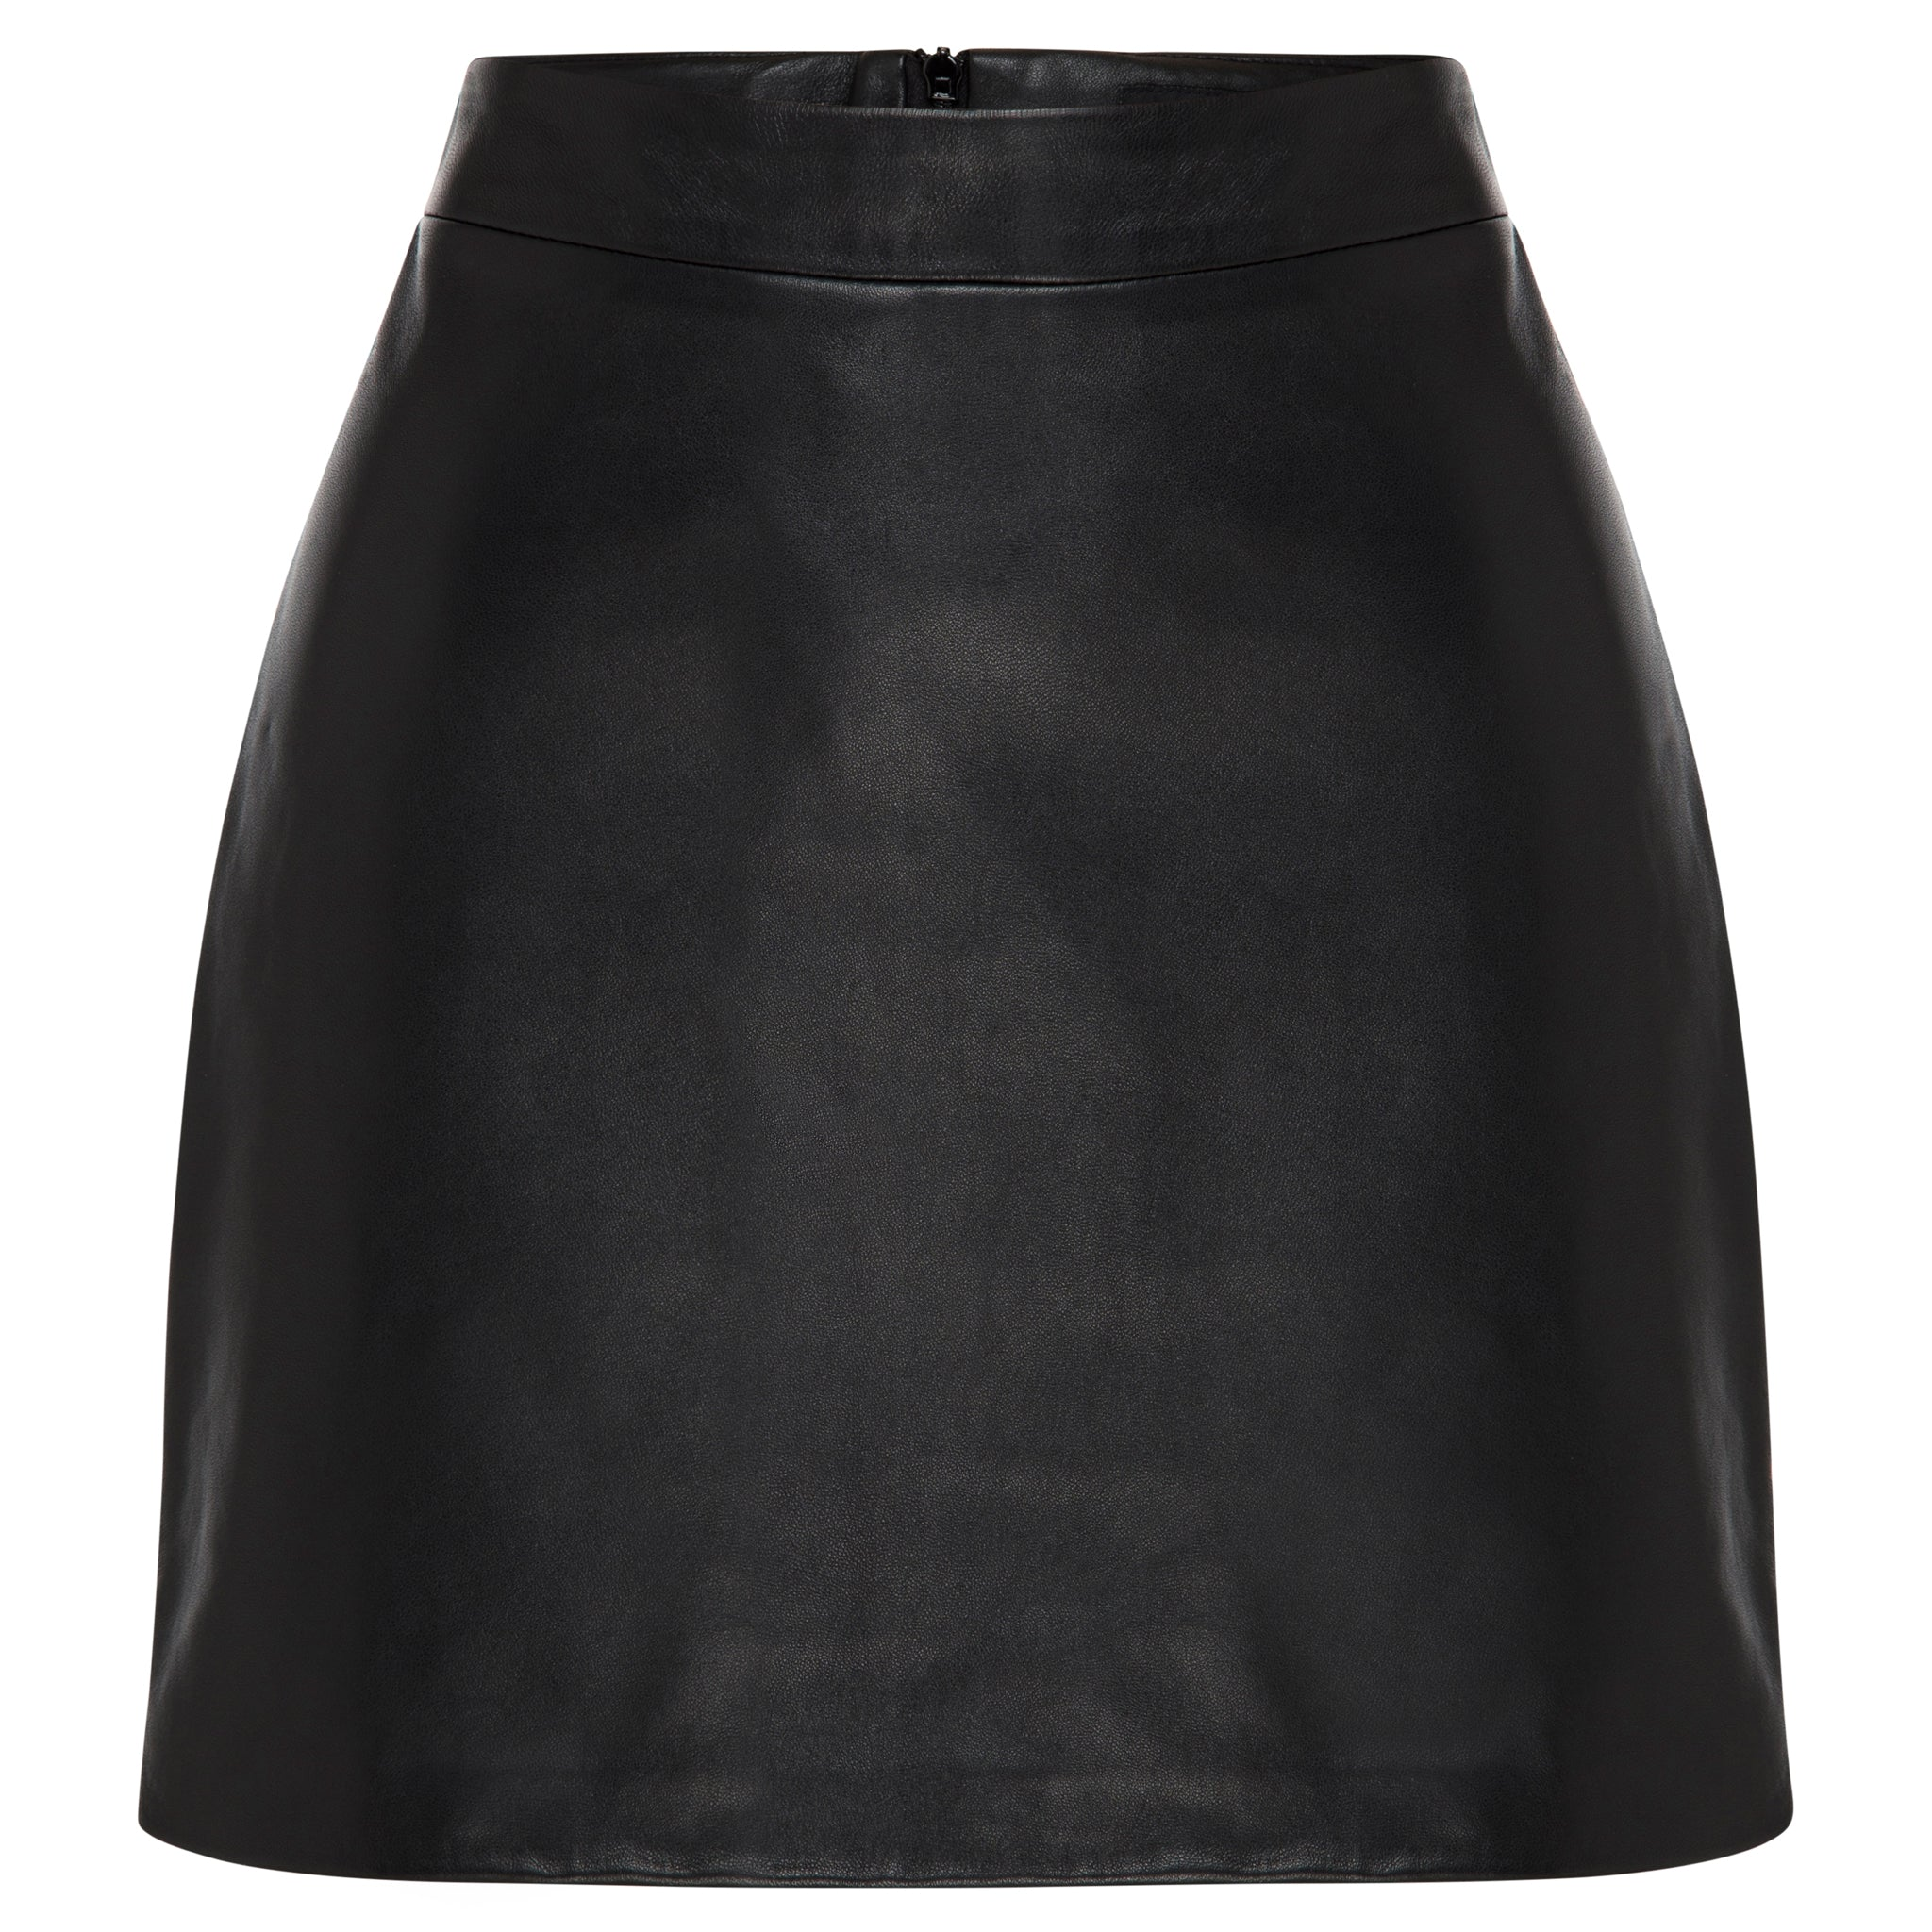 Wilshire Skirt - Jet Black